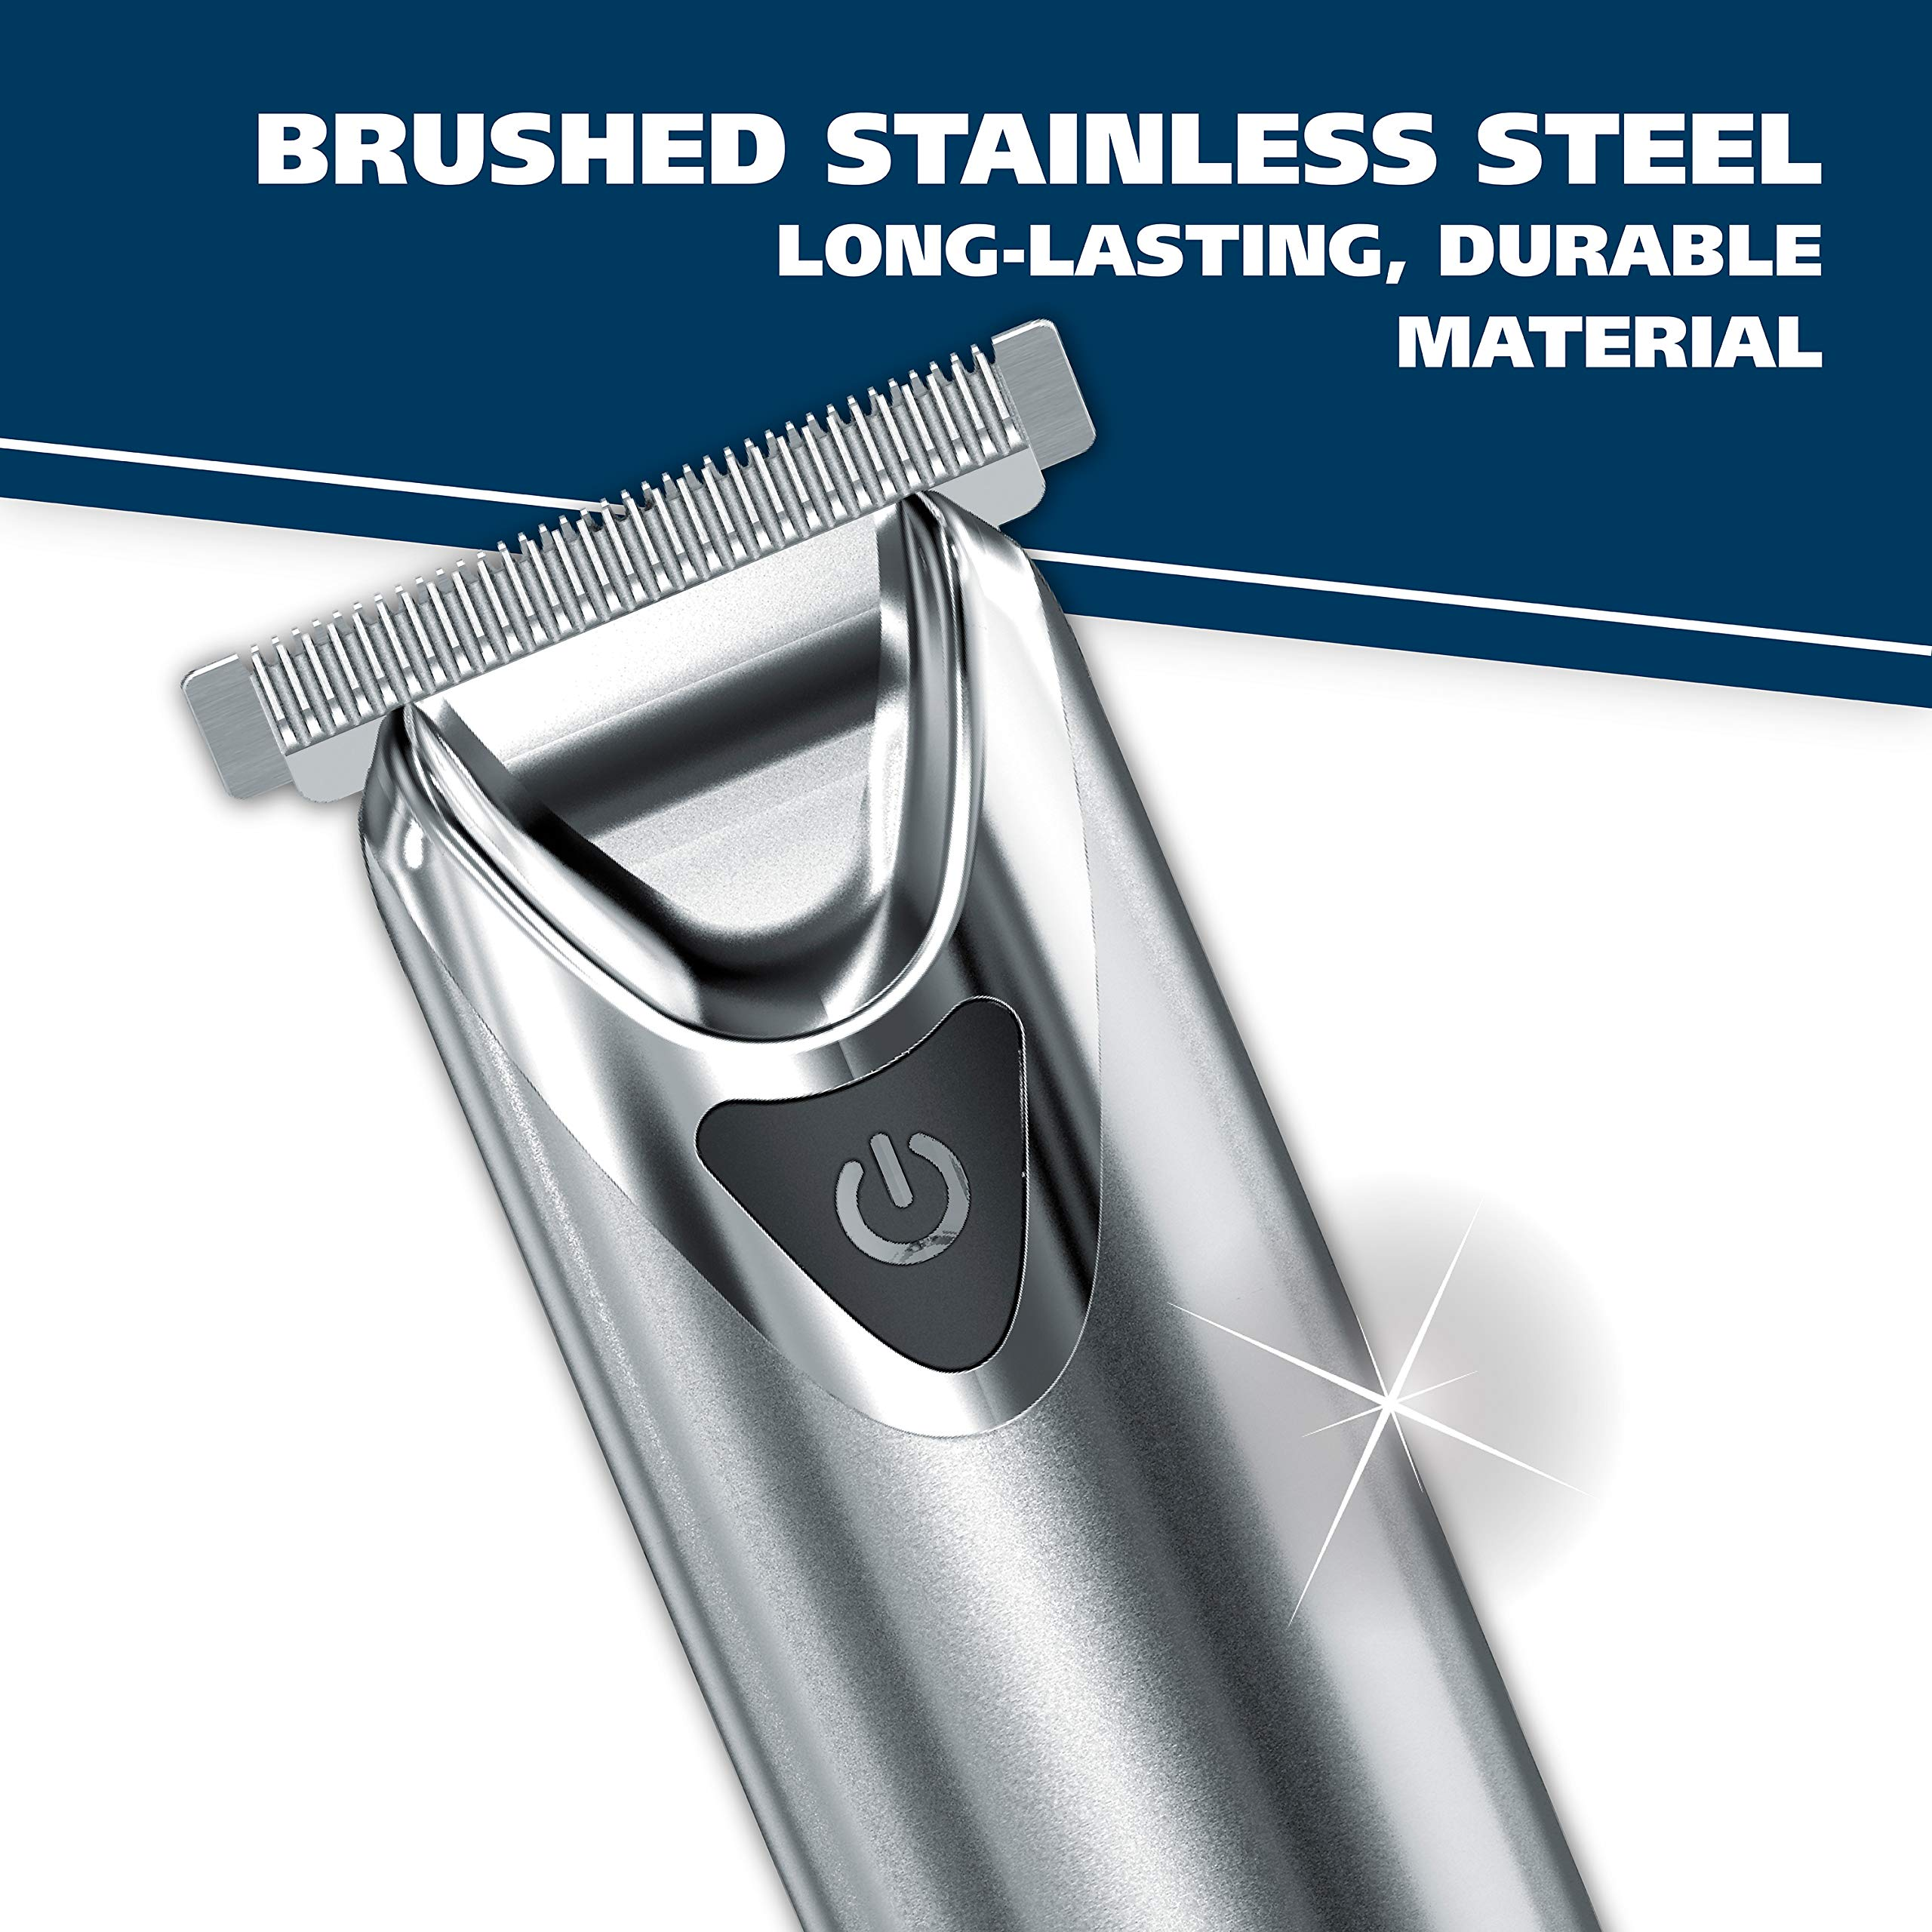 Wahl Clipper Stainless Steel Lithium Ion Plus Beard Trimmers for Men, Hair Clippers and Shavers, Nose Ear Trimmers, Rechargeable All in One Men's Grooming Kit, by the Brand used by Professionals #9818 by WAHL (Image #3)